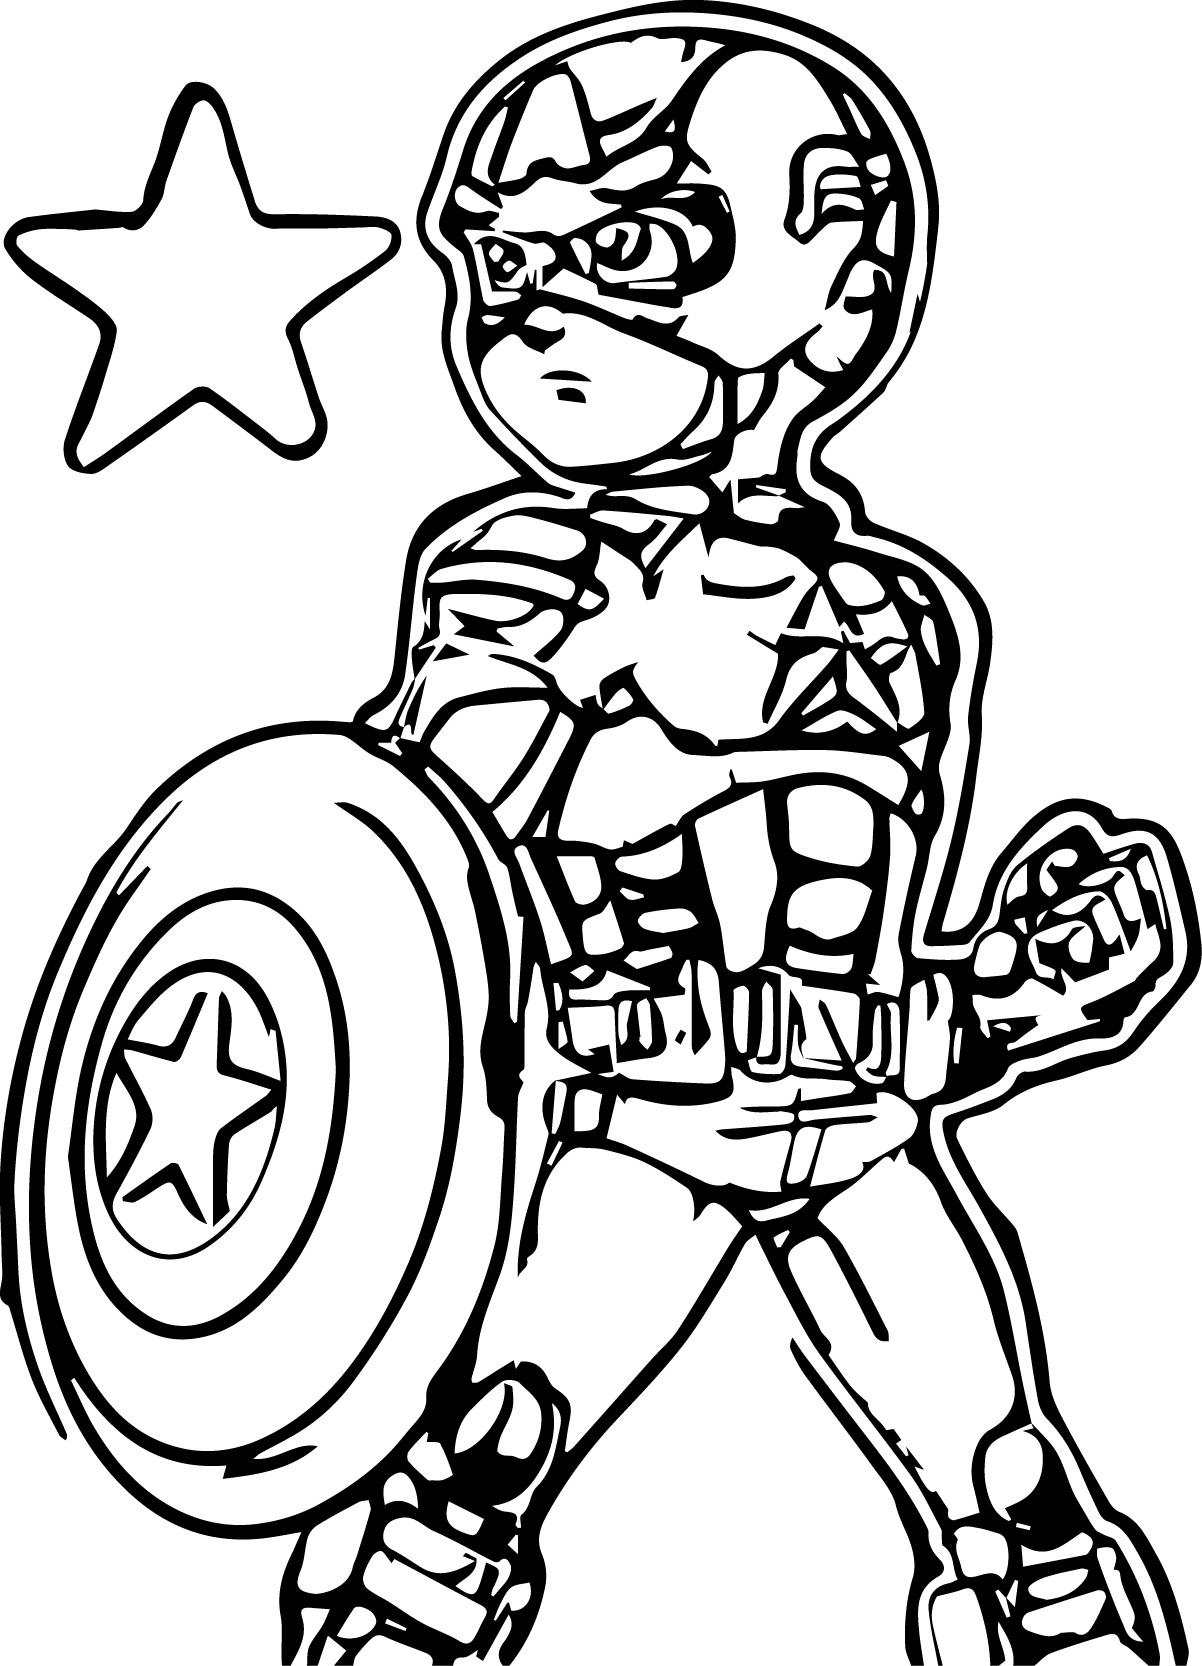 Letter Z Coloring Page in addition Hello Kitty Christmas Coloring Page Photo in addition Oprah Winfrey together with Paw Patrol Coloring Pages your Paw Patrol 4th Of July Coloring Page additionally Easy Color By Numbers Coloring Pages. on coloring pages for 4th of july